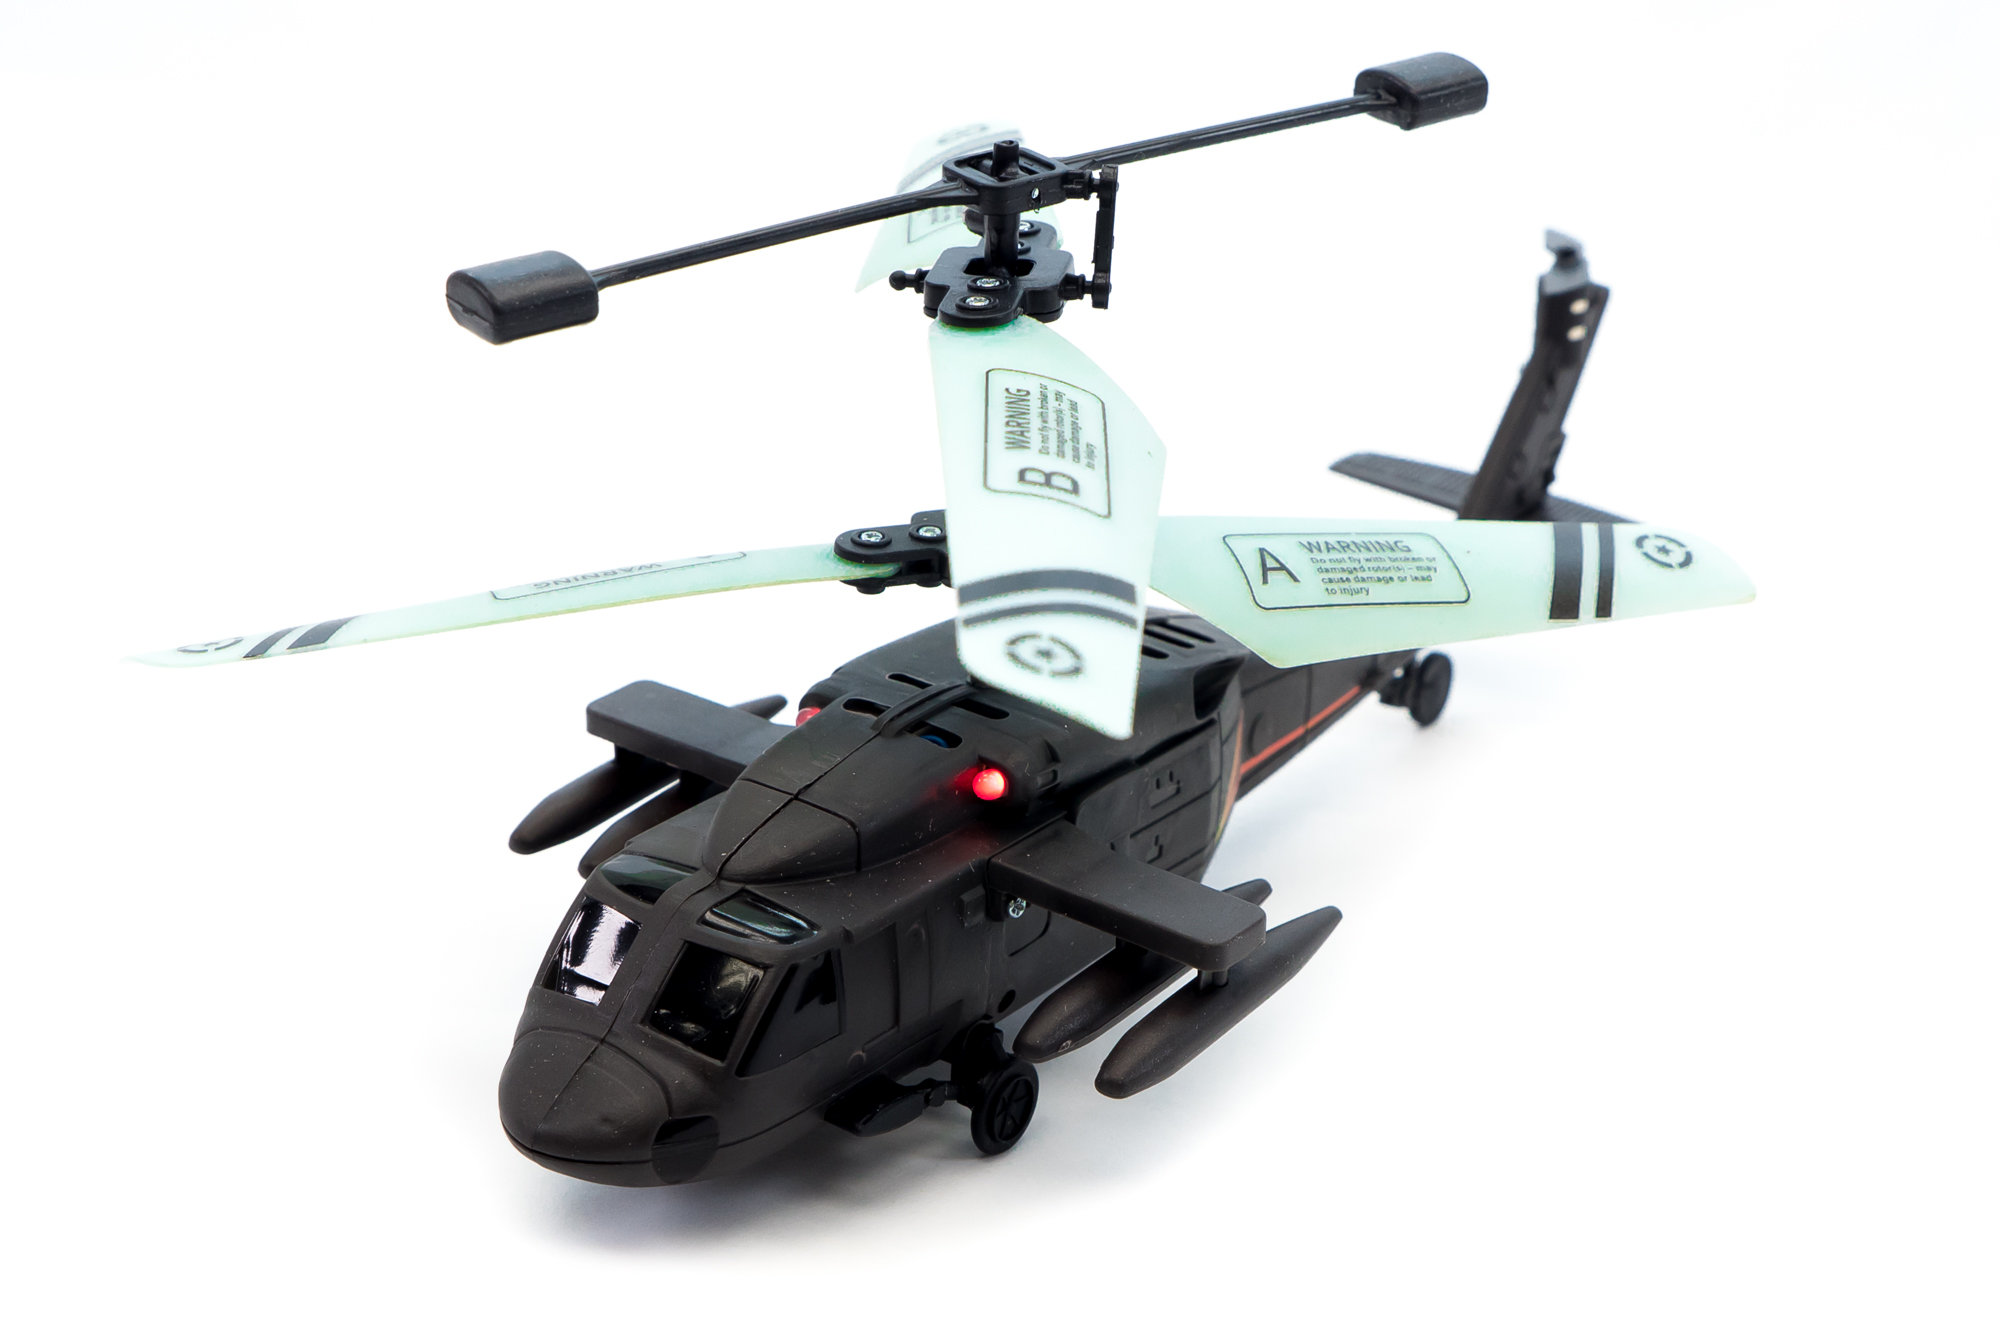 Adventure Force Elite Helicopter by WALMART